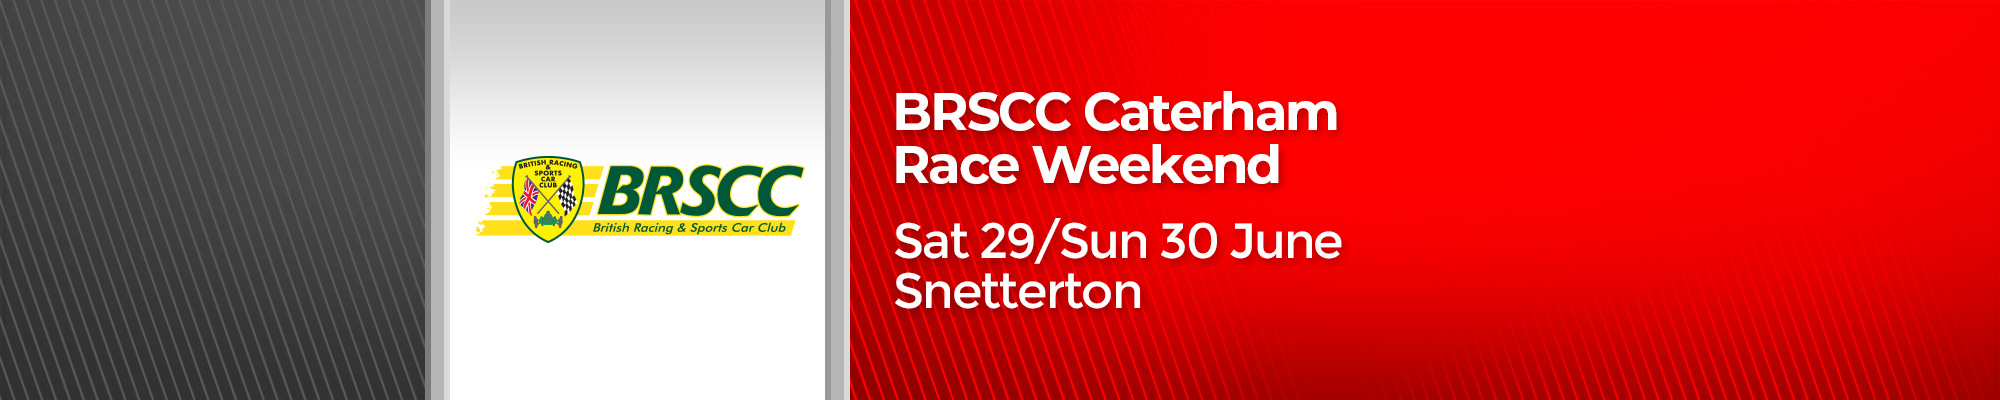 BRSCC Caterham Race Weekend